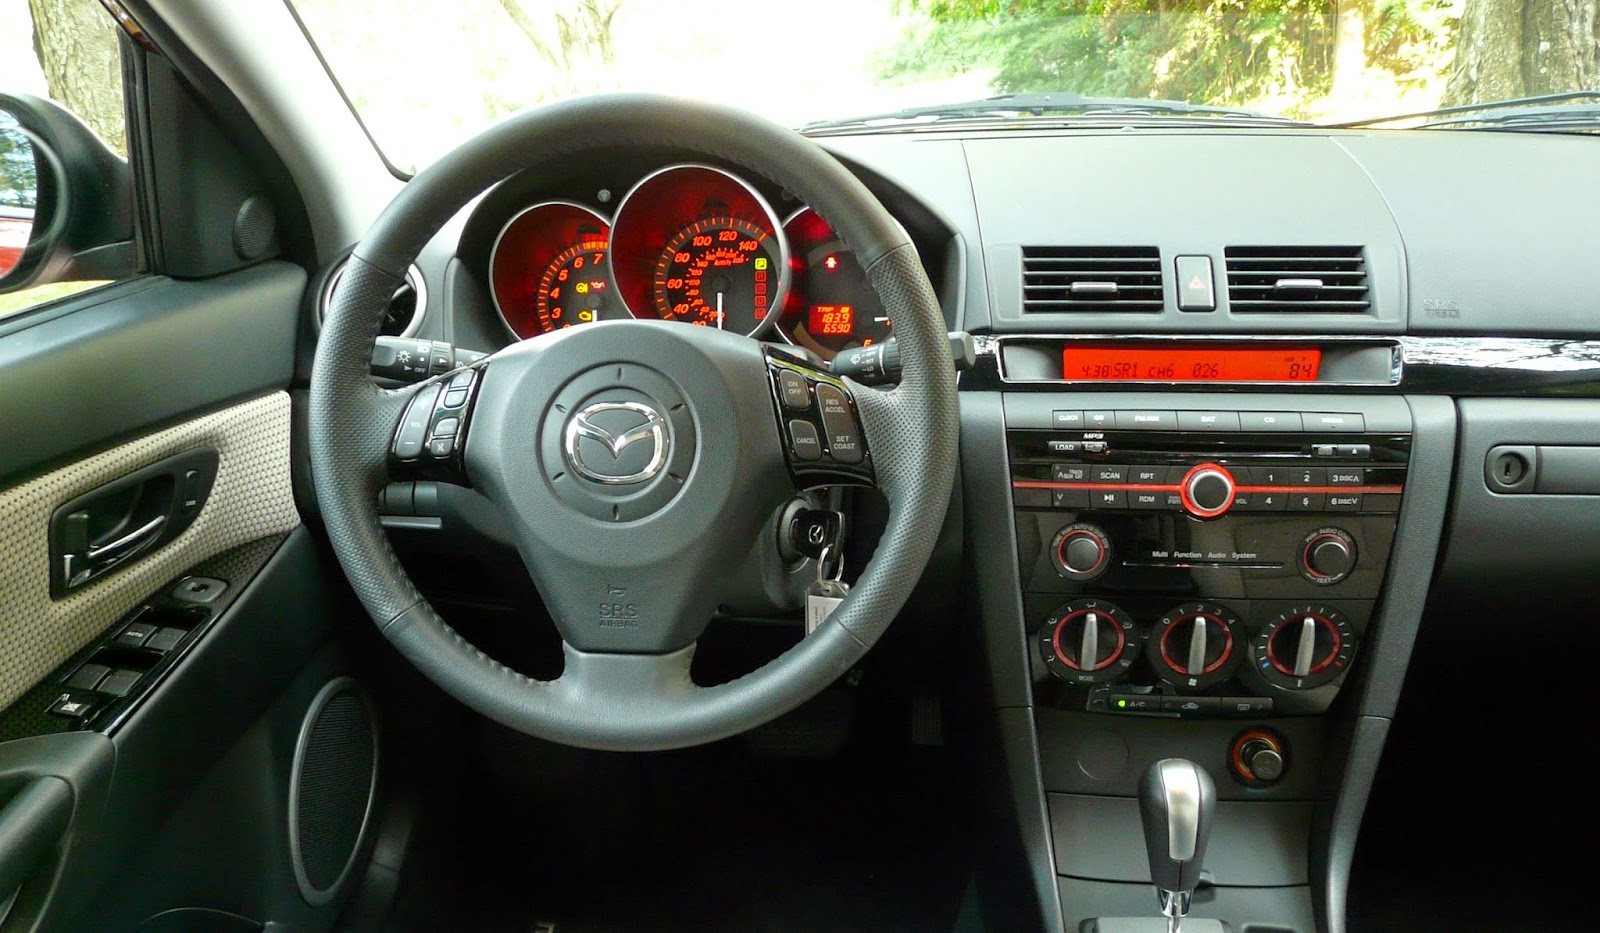 2008 Mazda 3 Car Stereo Wiring Diagram